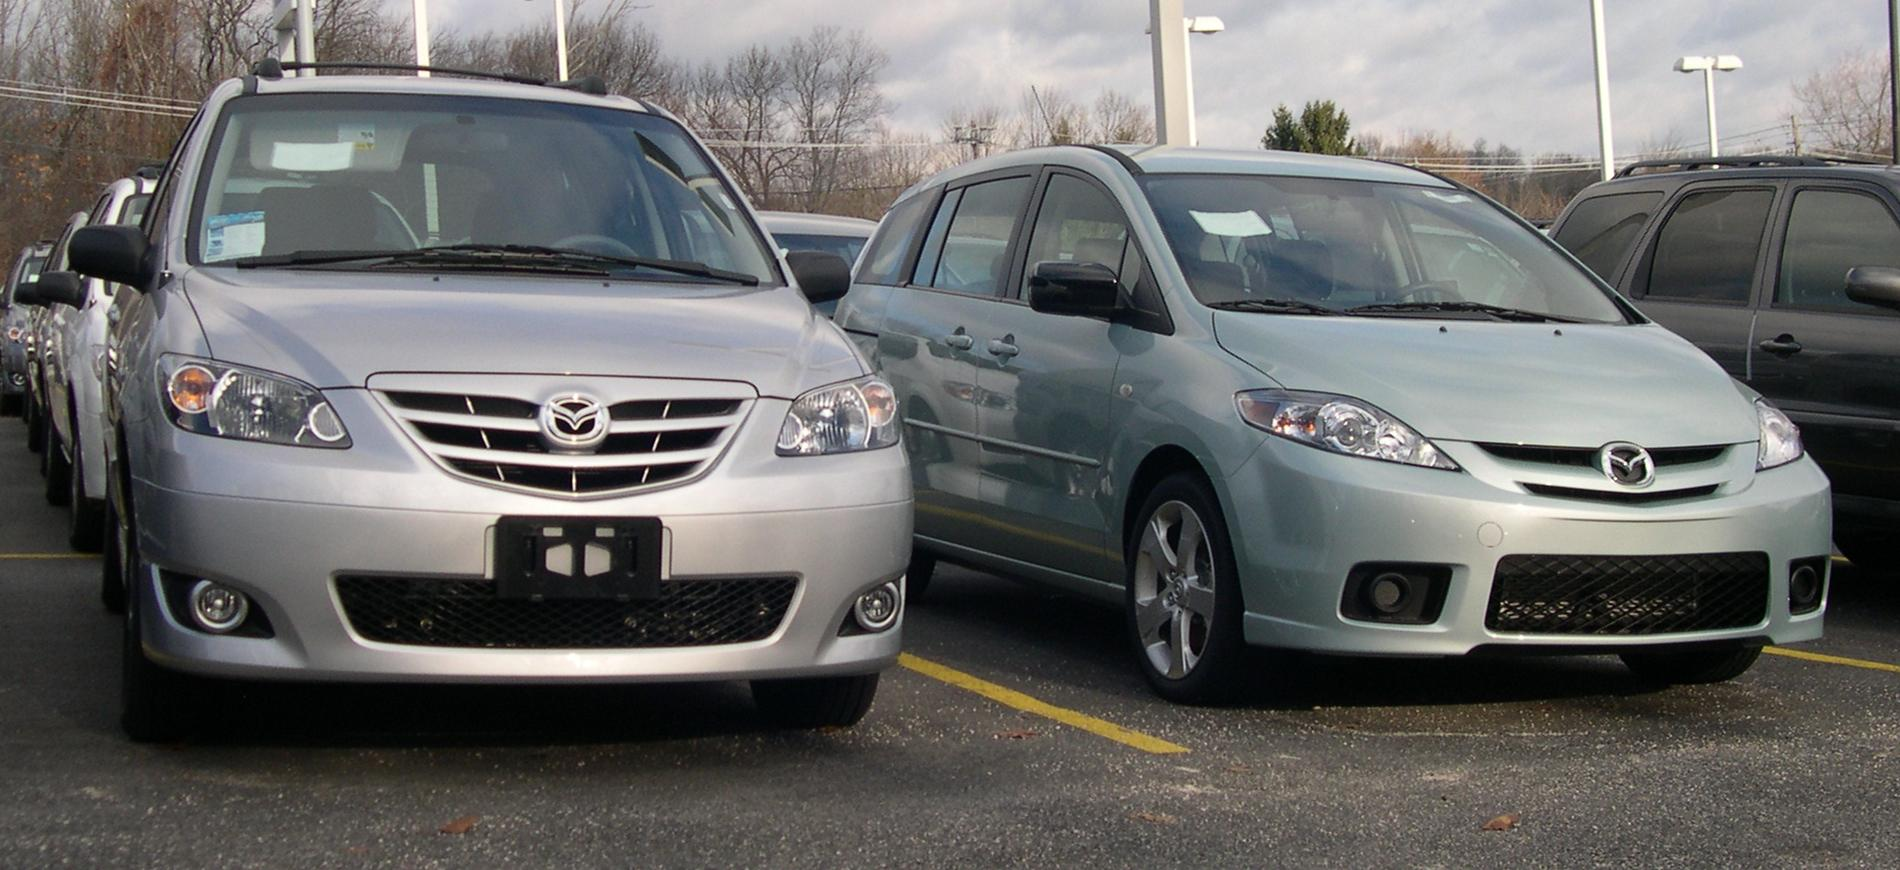 File 2006 mazda mpv and mazda5 jpg